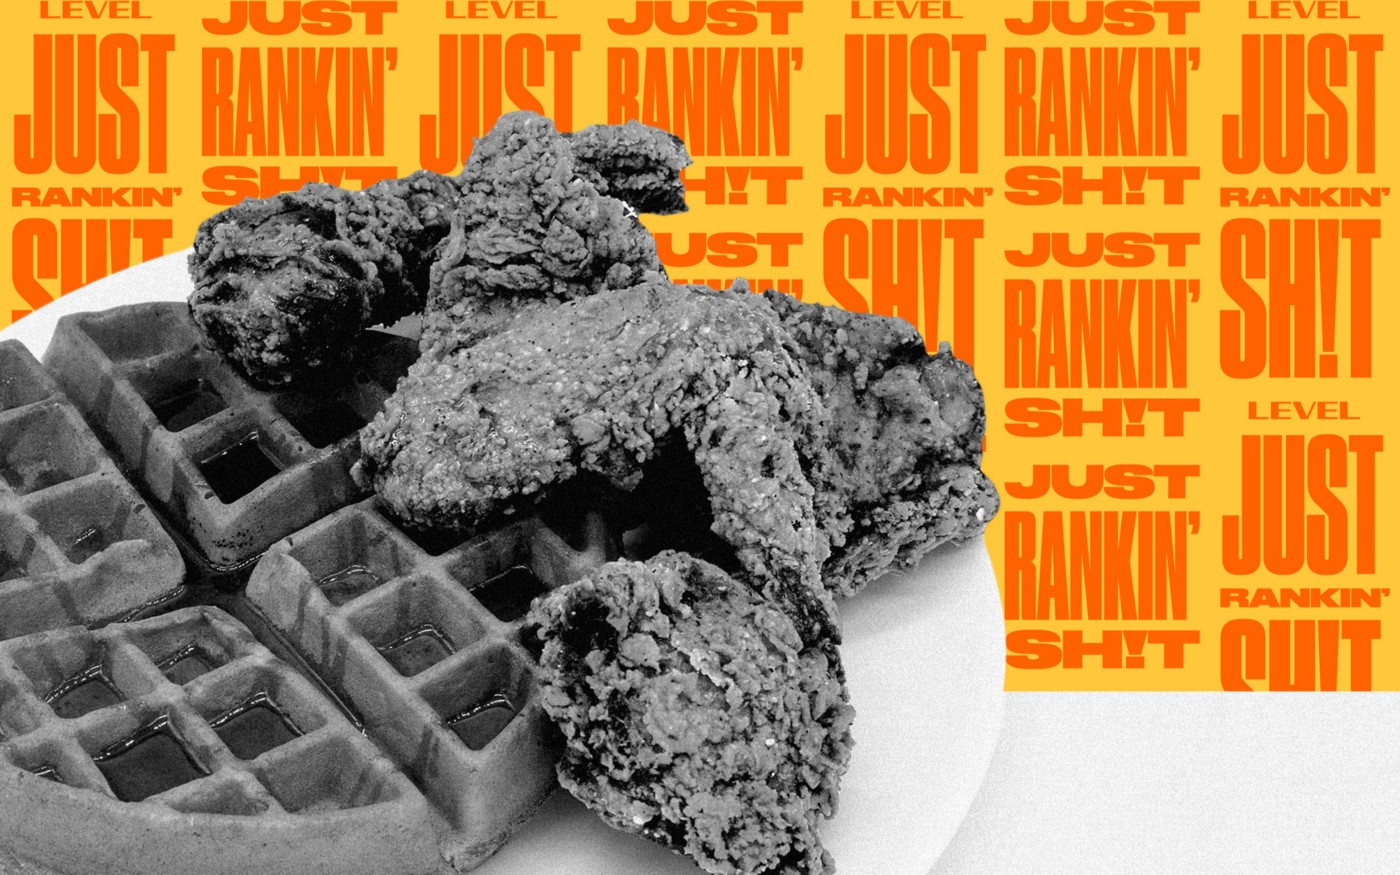 """A photo illustration of a chicken and waffles meal and """"Just Rankin Shit"""" text in the background"""